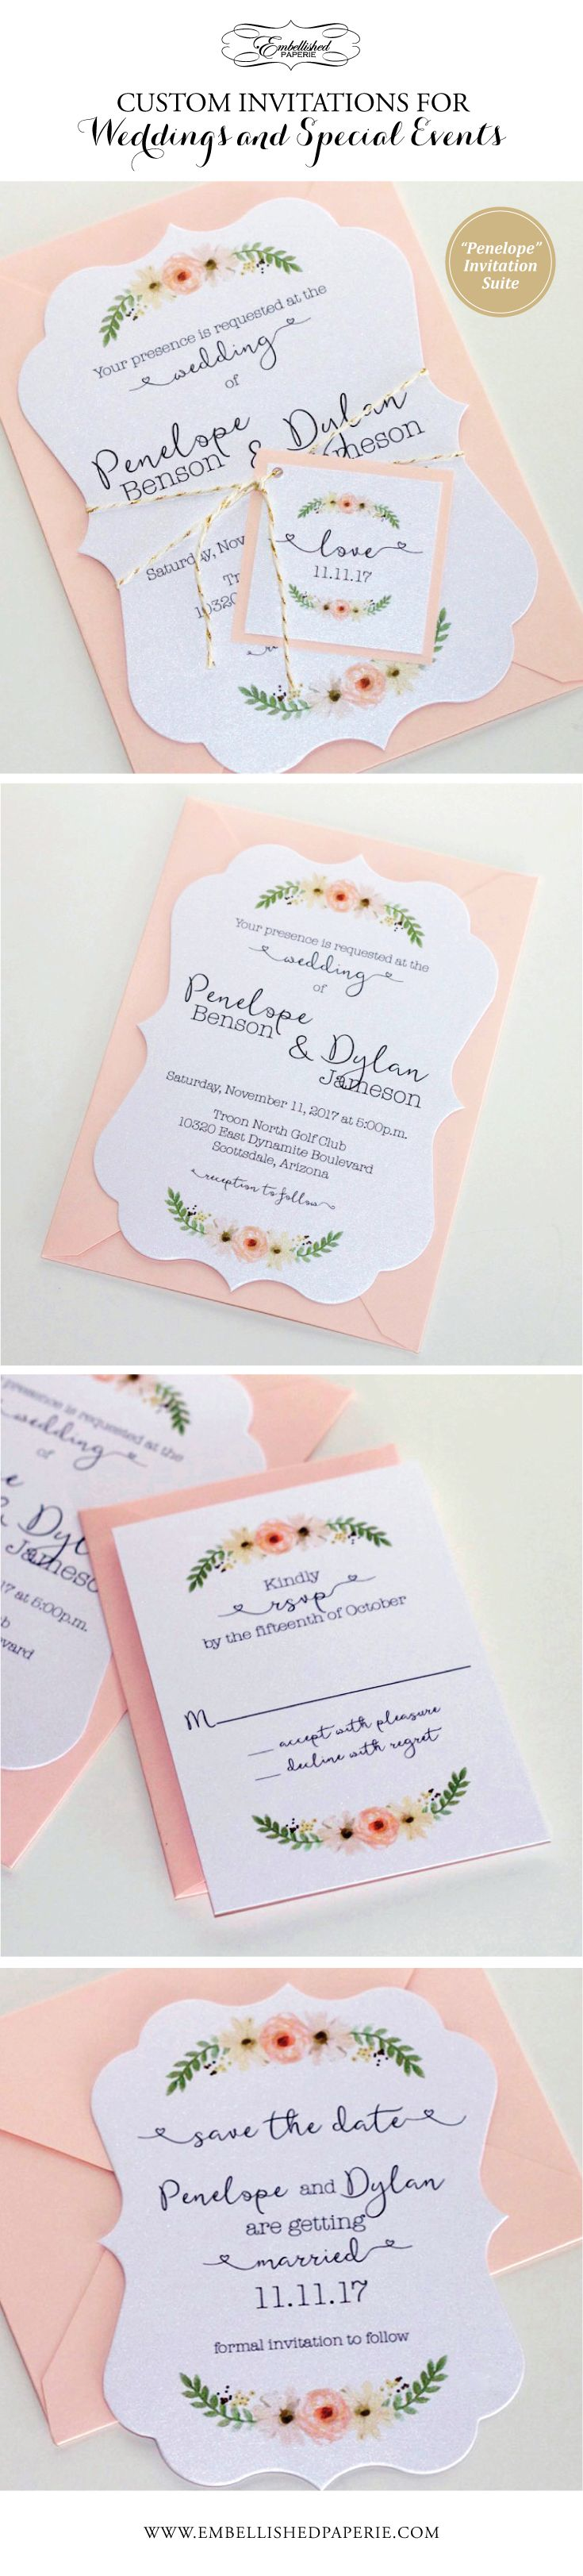 Custom Die Cut Wedding Invitation Vintage